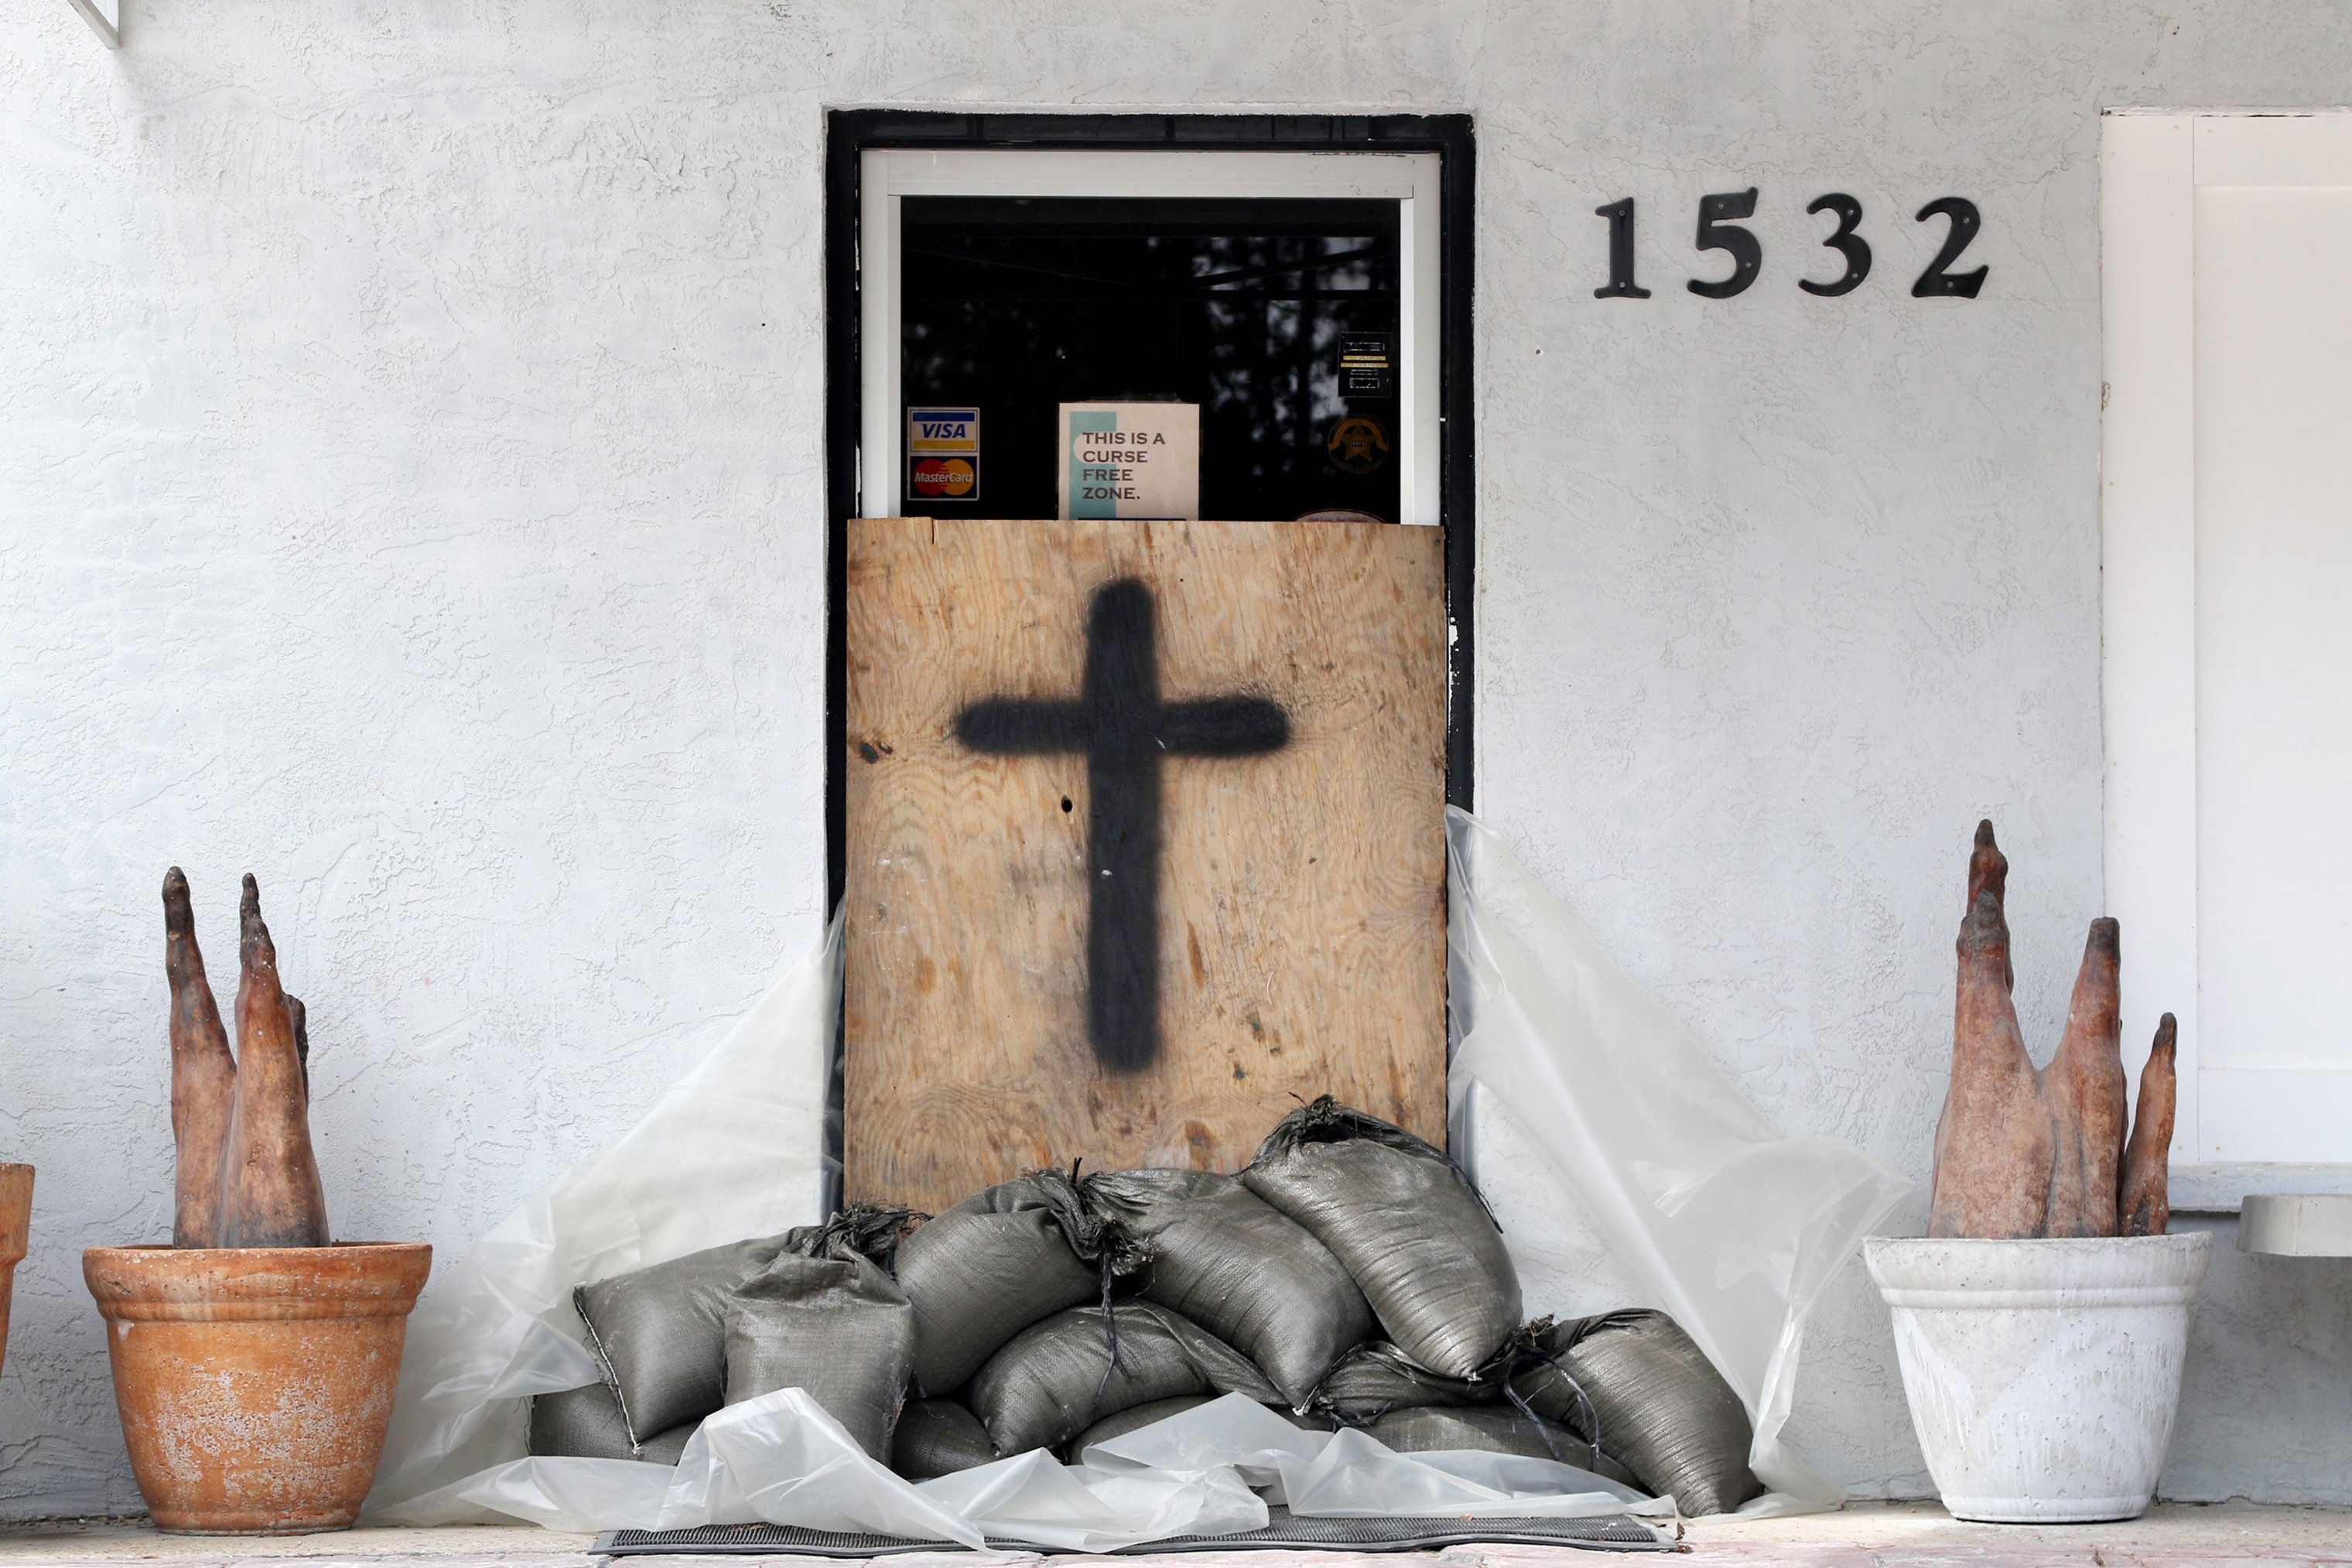 The front door of the Brooks Concrete business office is sandbagged in downtown Panacea, Fla. on Oct. 9, 2018 as Hurricane Michael churns toward the Florida Panhandle.